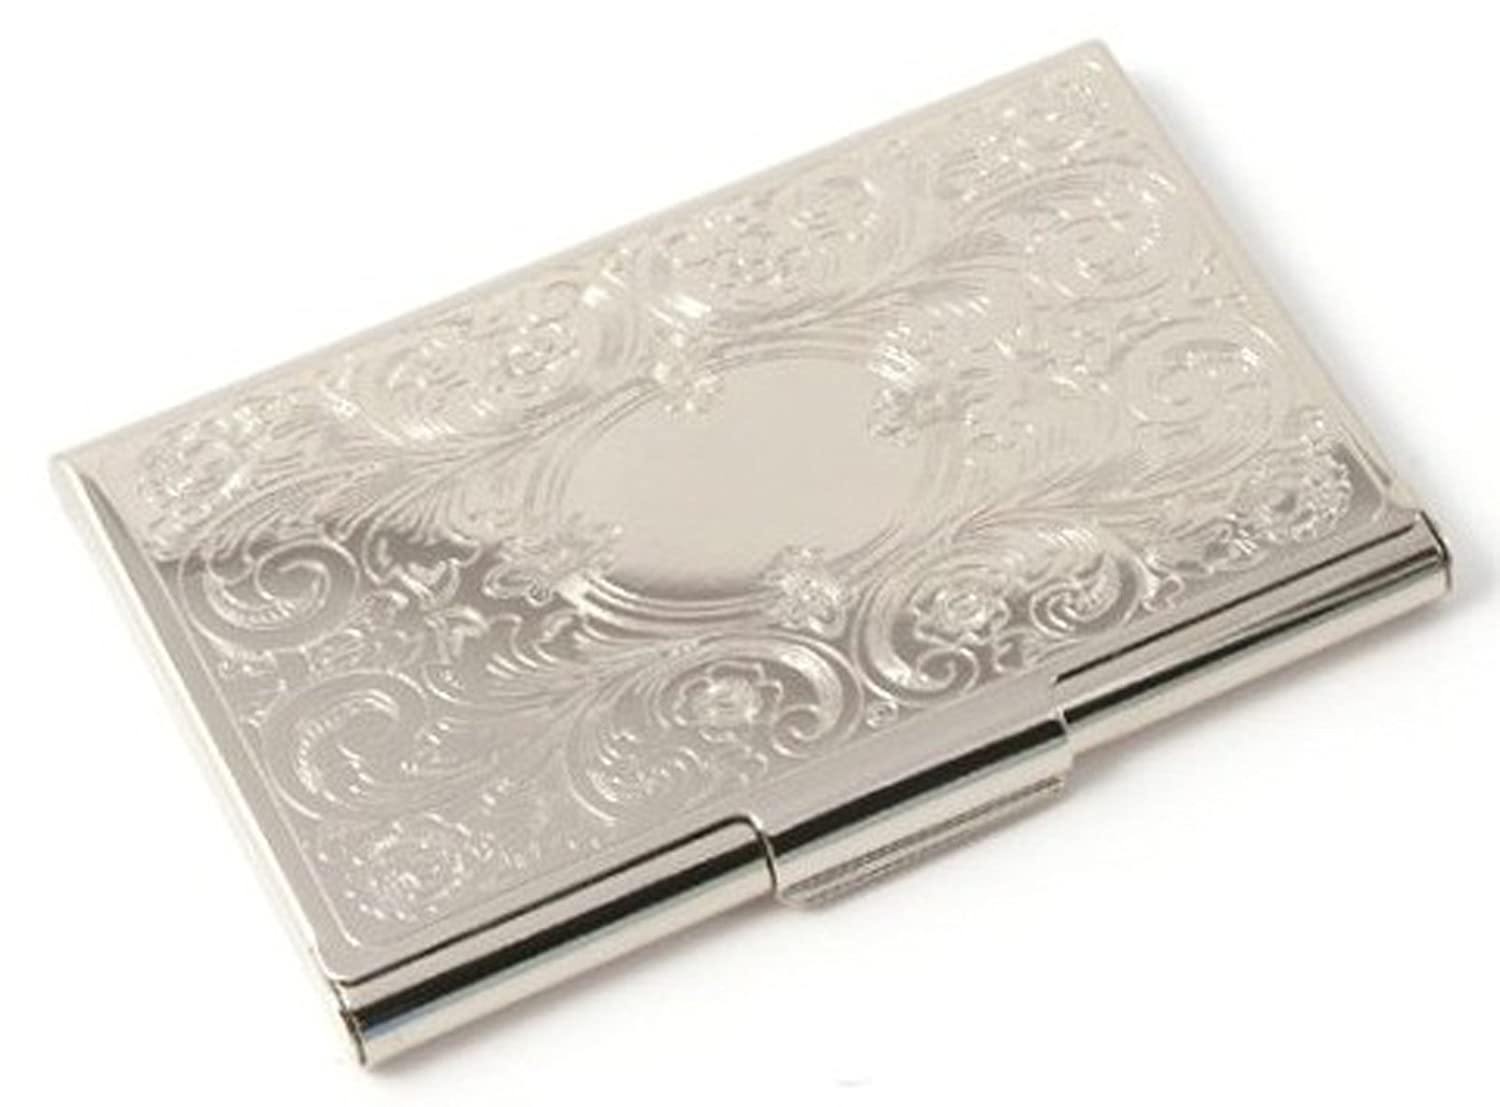 Deluxe stainless steel metal business credit card holder case silver deluxe stainless steel metal business credit card holder case silver monogram amazon office products reheart